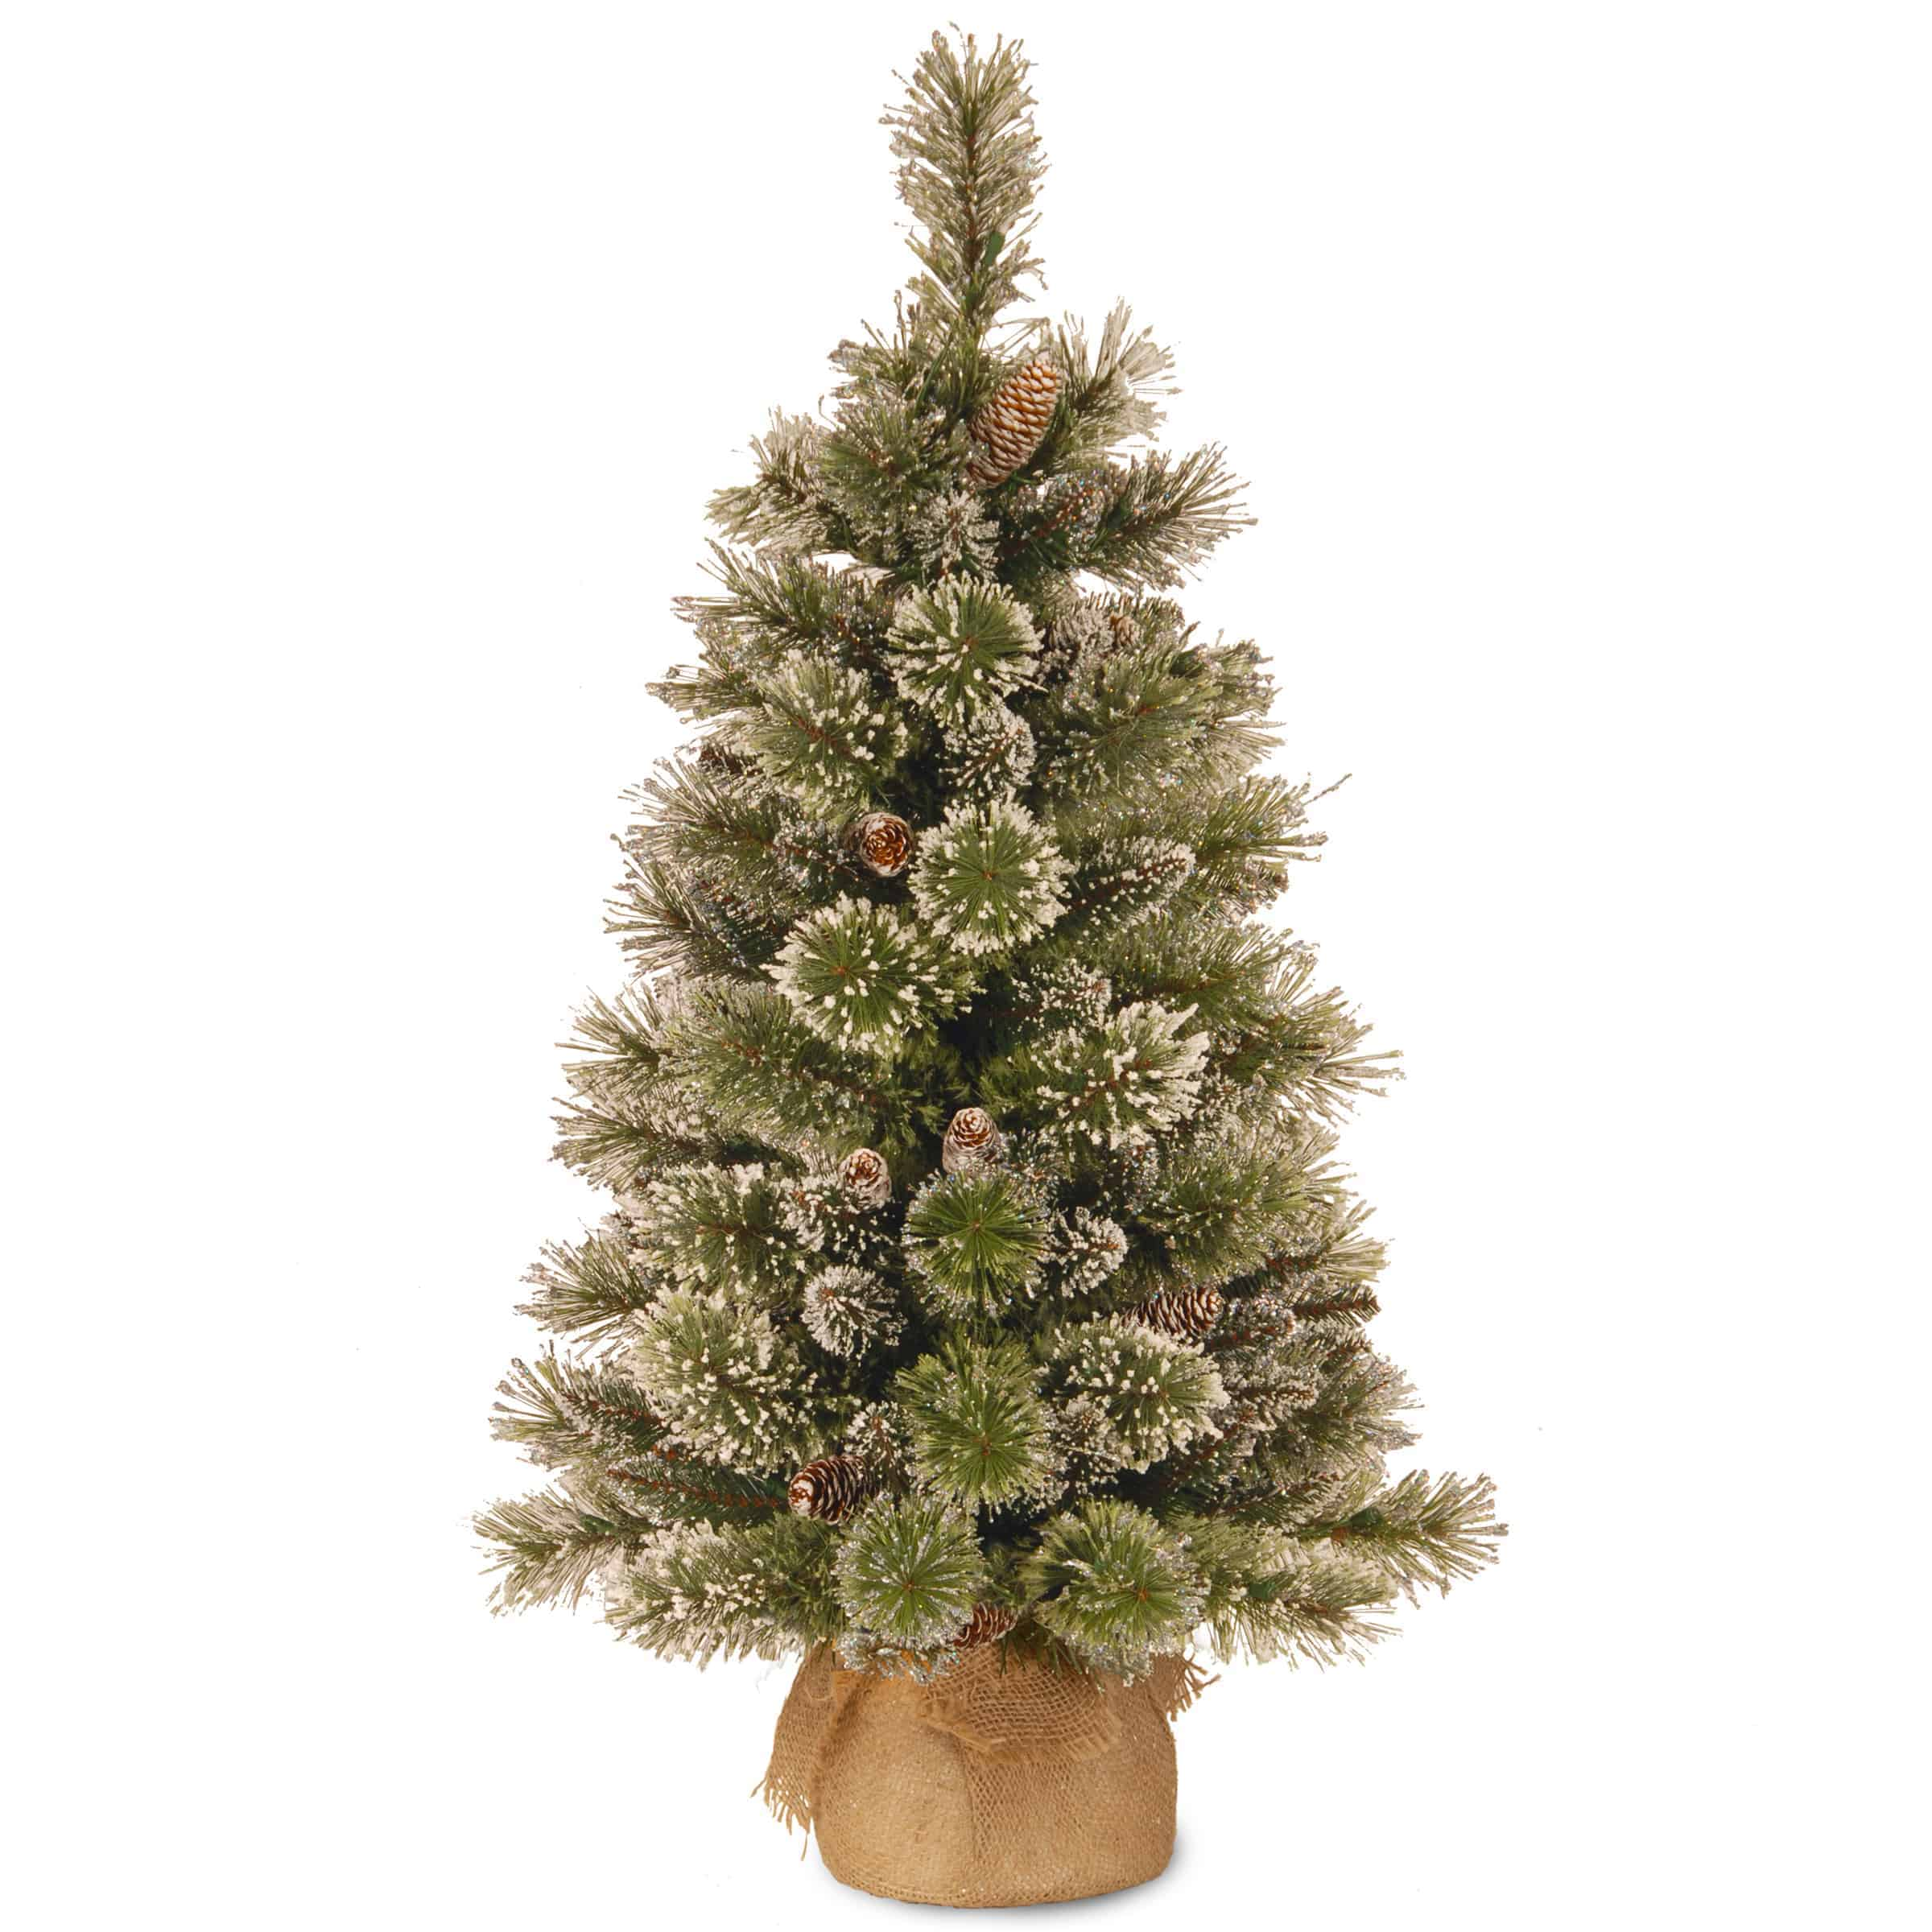 Artificial Christmas Trees Un Lit Christmas Trees Mini Artificial Christmas Trees Un Lit 3ft Glittery Bristle Pine Small Artificial Christmas Tree With Cones In Burlap Sack Christmasland Ie